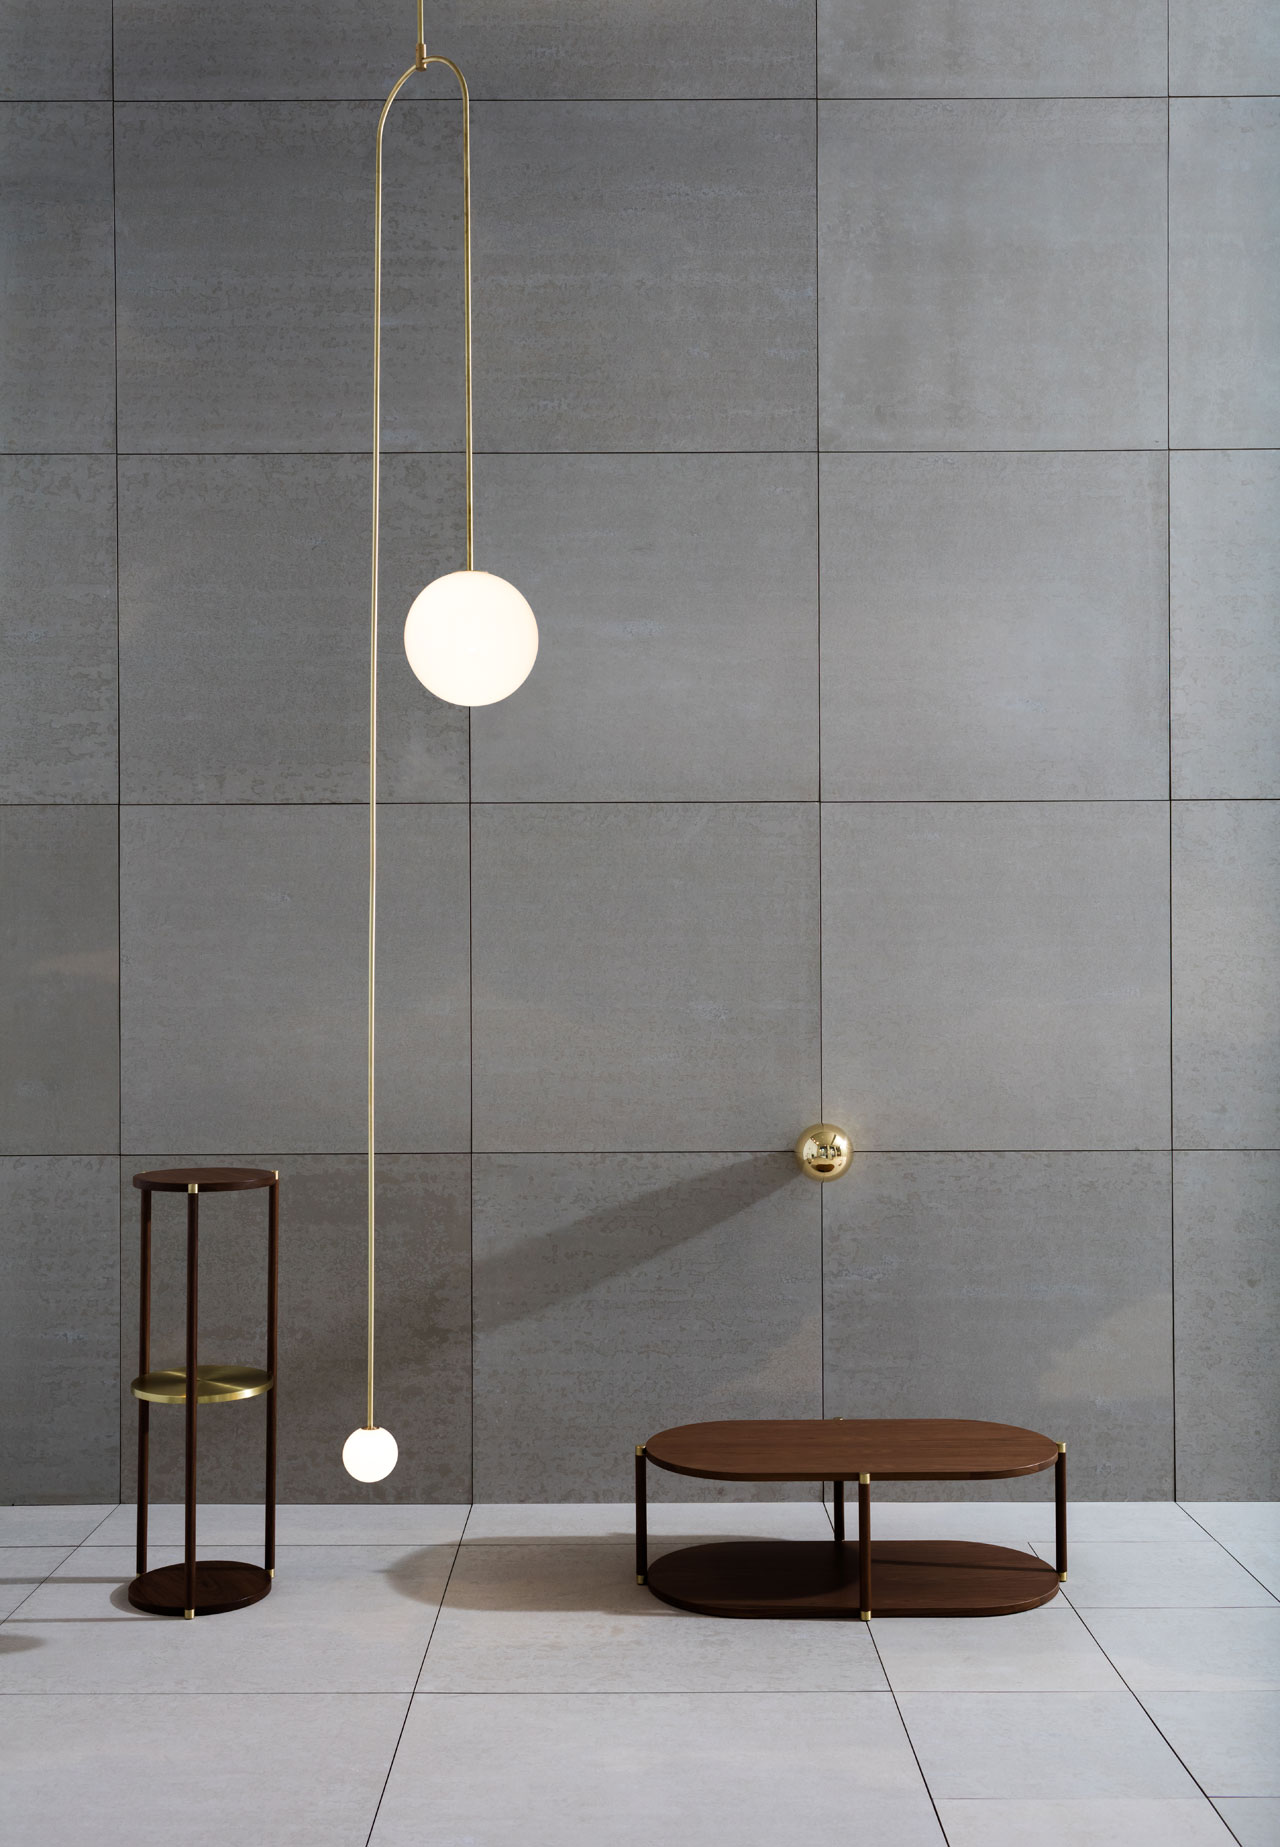 The Double Dream of Springinstallation by Michael Anastassiades for Herman Millerwhich featuredhis inaugural collection of occasional furnishingscreated exclusively for Herman Miller. Photo by Ben Anders